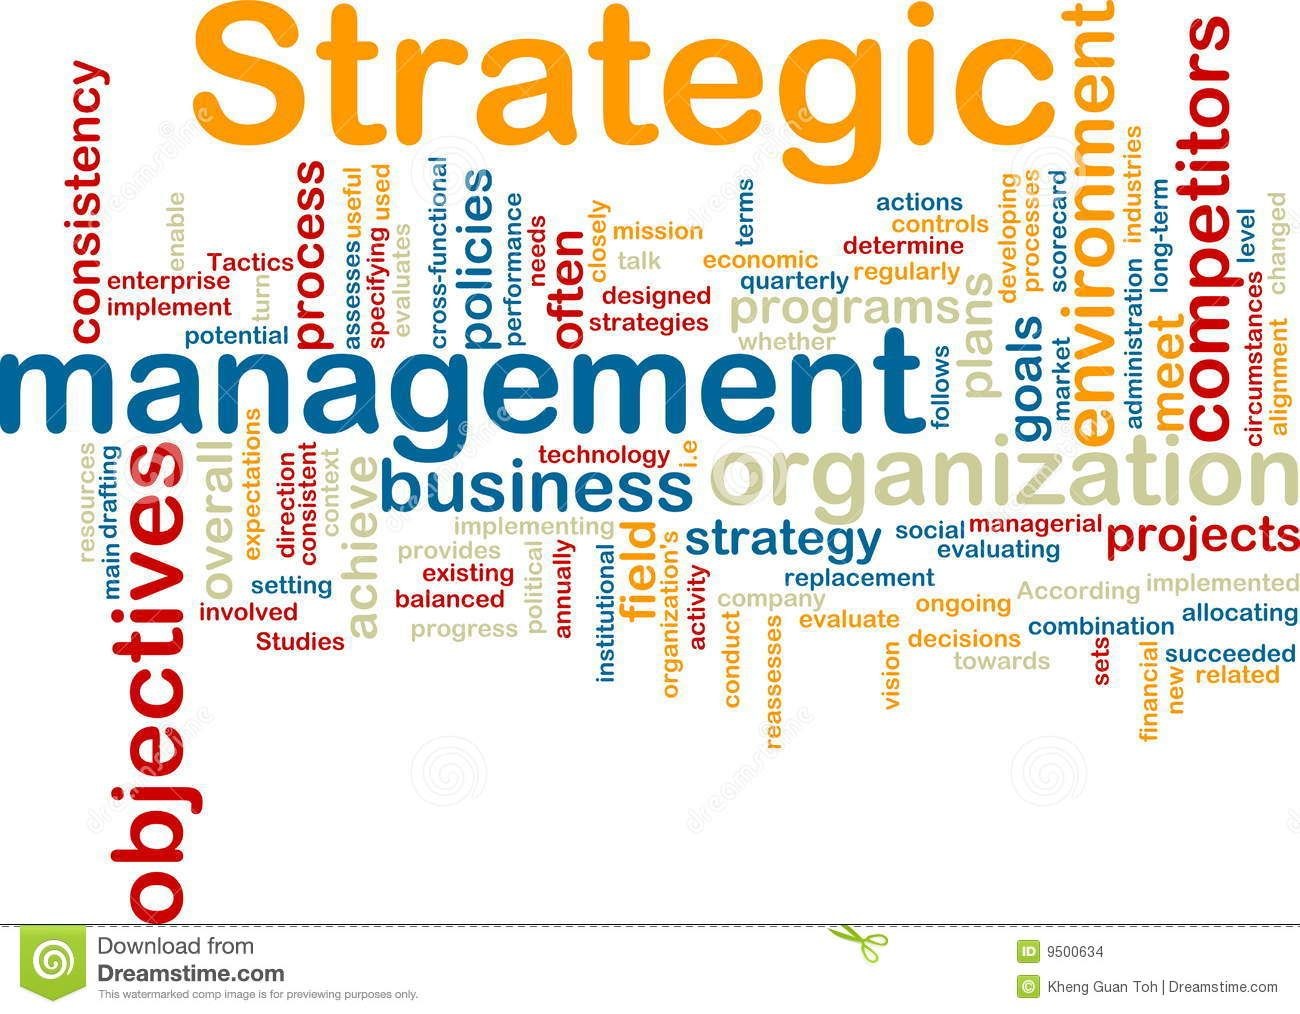 strategic management wordcloud stock images - image: 9500634, Powerpoint templates